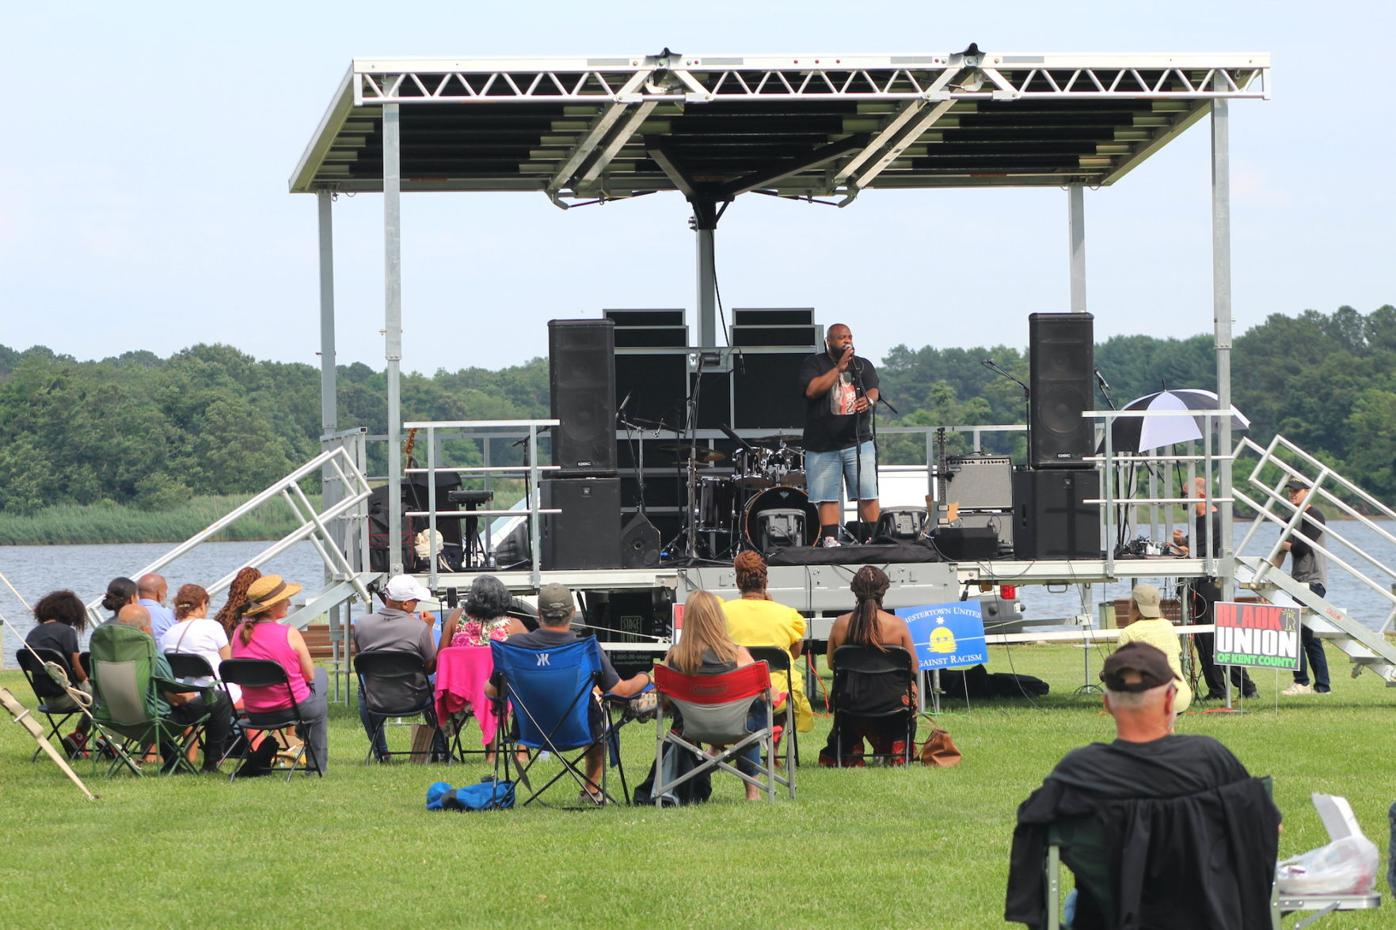 Chestertown celebrates Juneteenth with block party, festivities in Wilmer Park